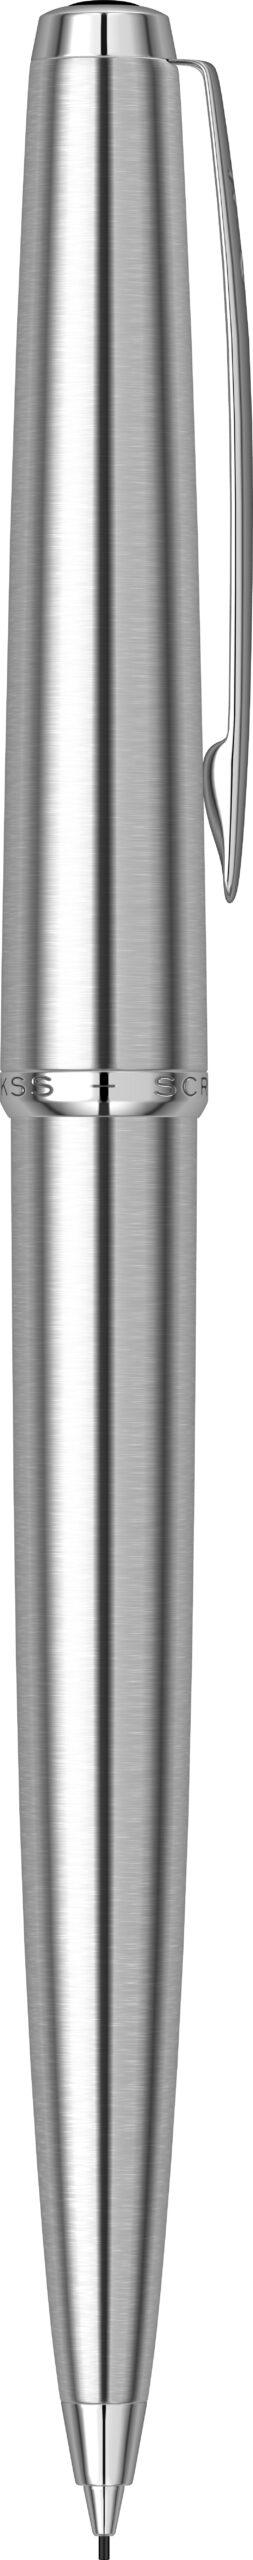 Stainless Steel CT Creion Mecanic 0.7 - Scrikss 3